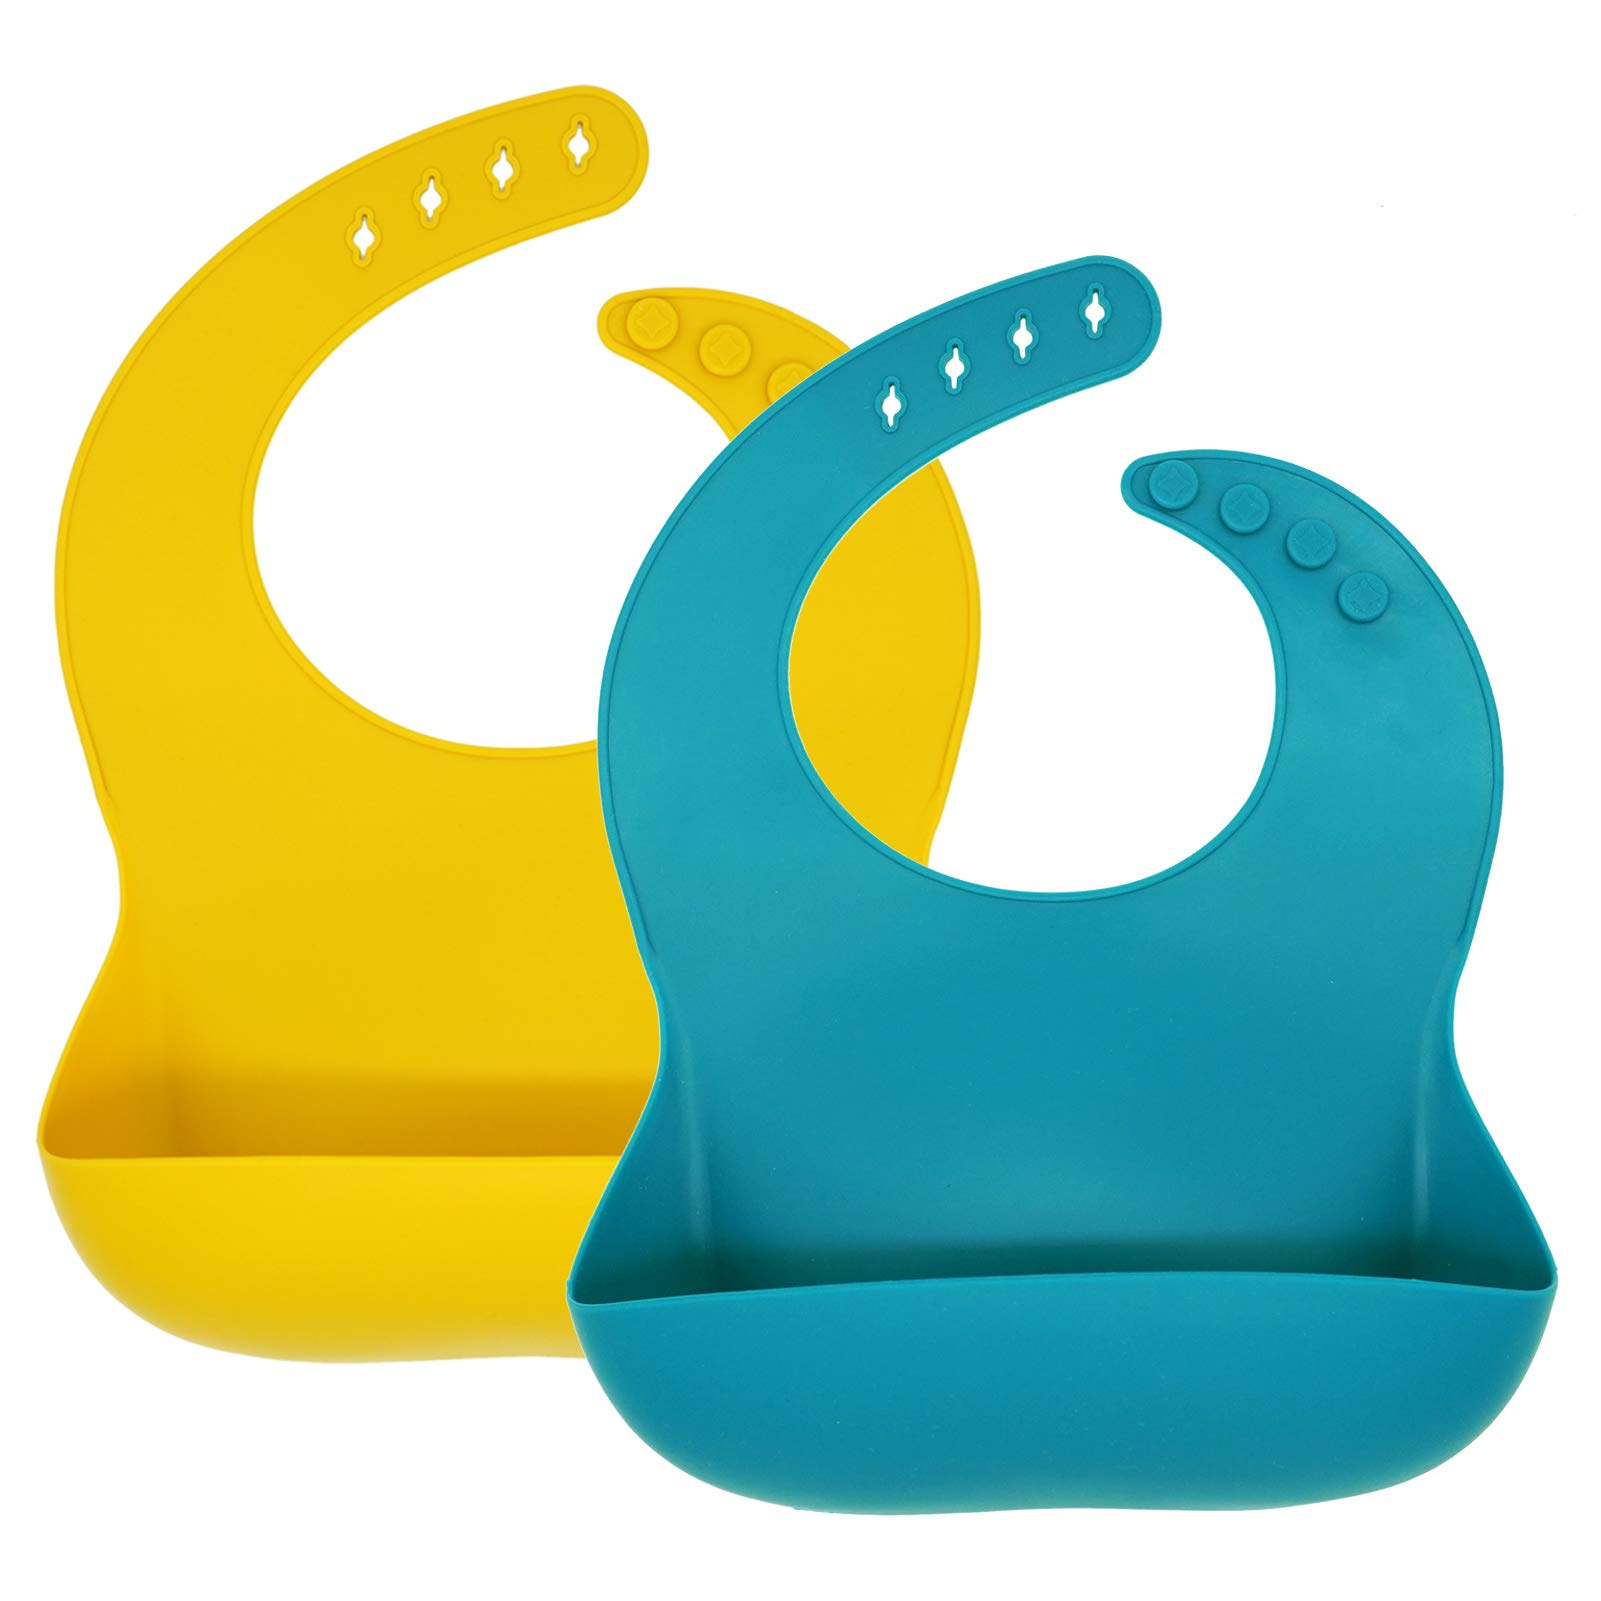 Silicone Baby Bibs, Socub Comfortable Waterproof Silicone Bibs for Babies & Toddlers, BPA Free, with Food Catcher Pocket, Mustard, Teal